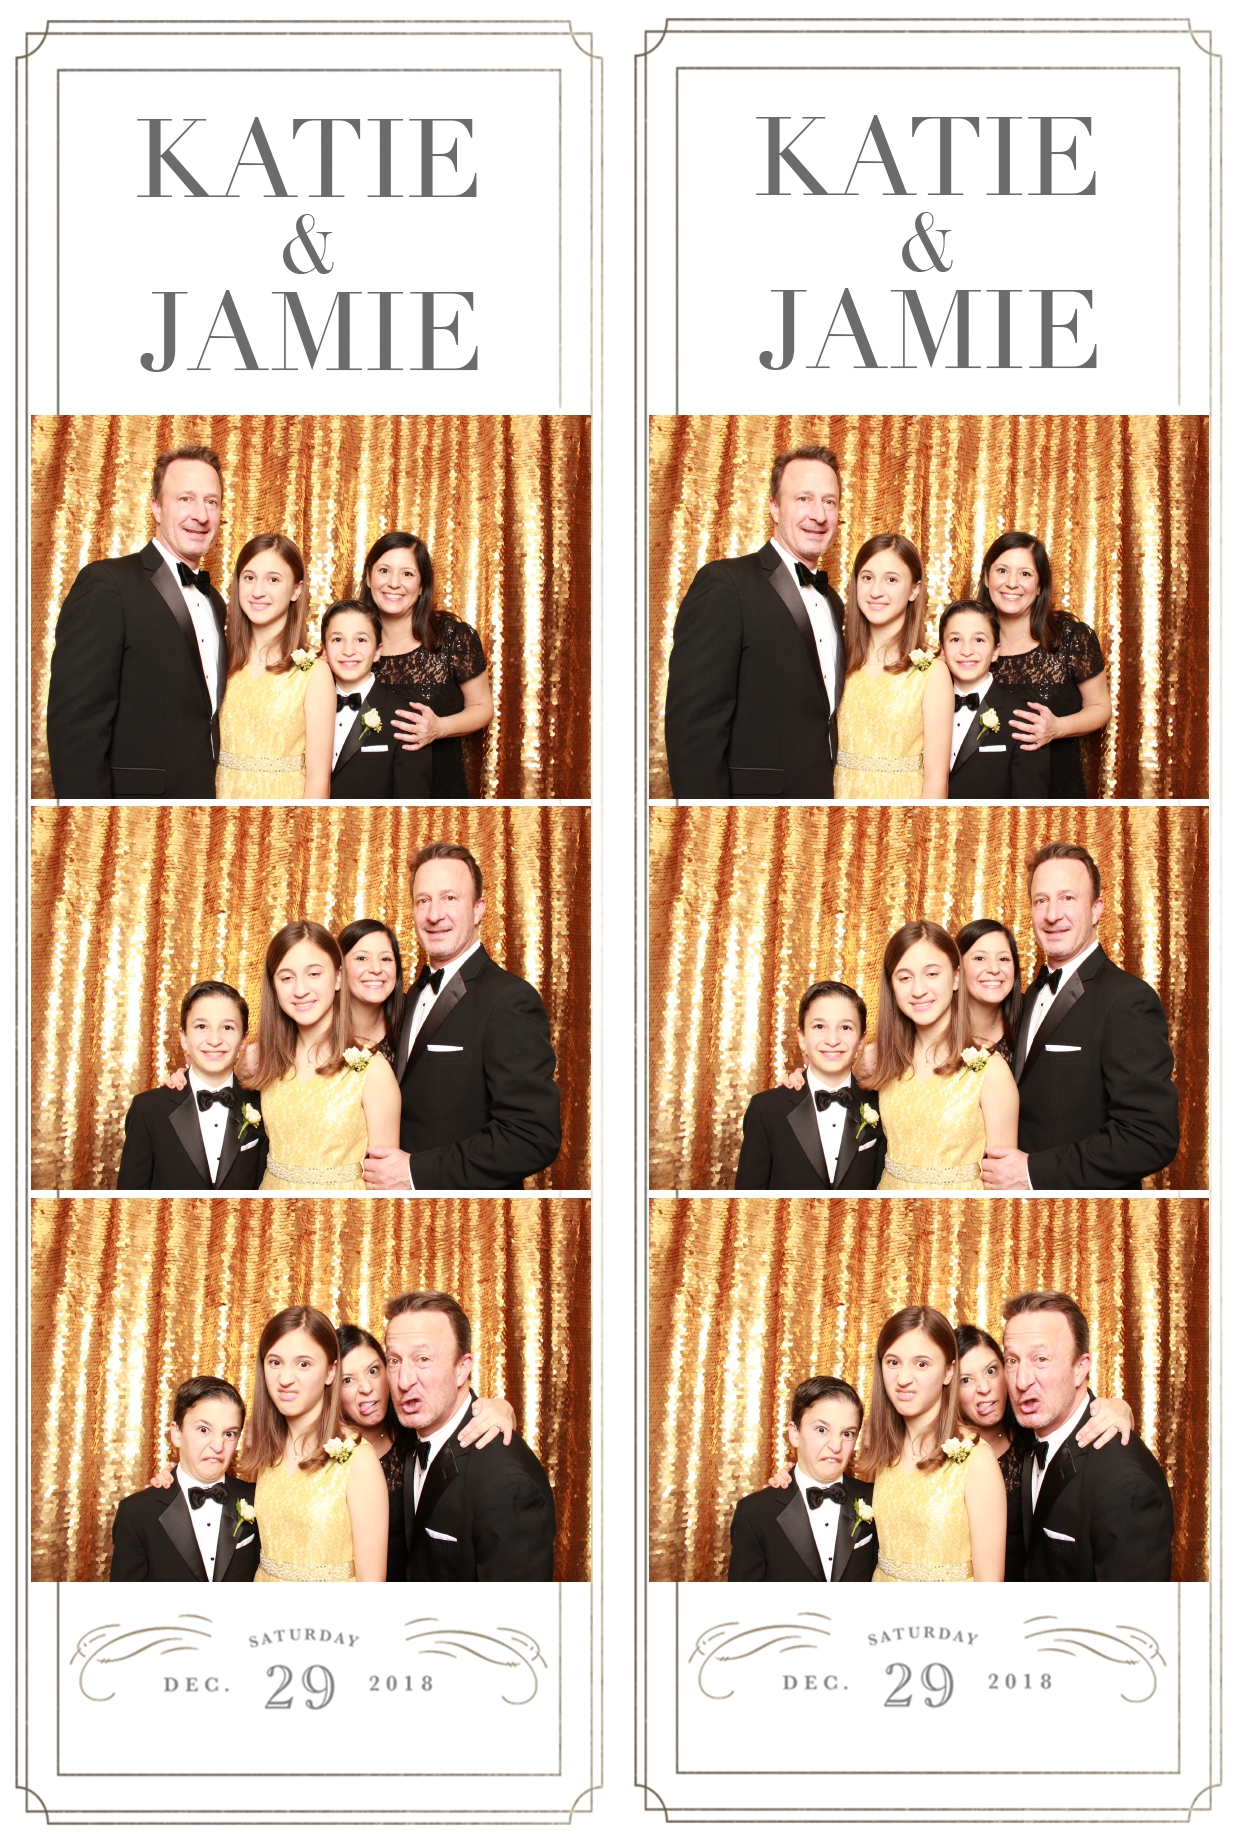 Oh Happy Day Booth - Katie and Jamie Customized25.jpg